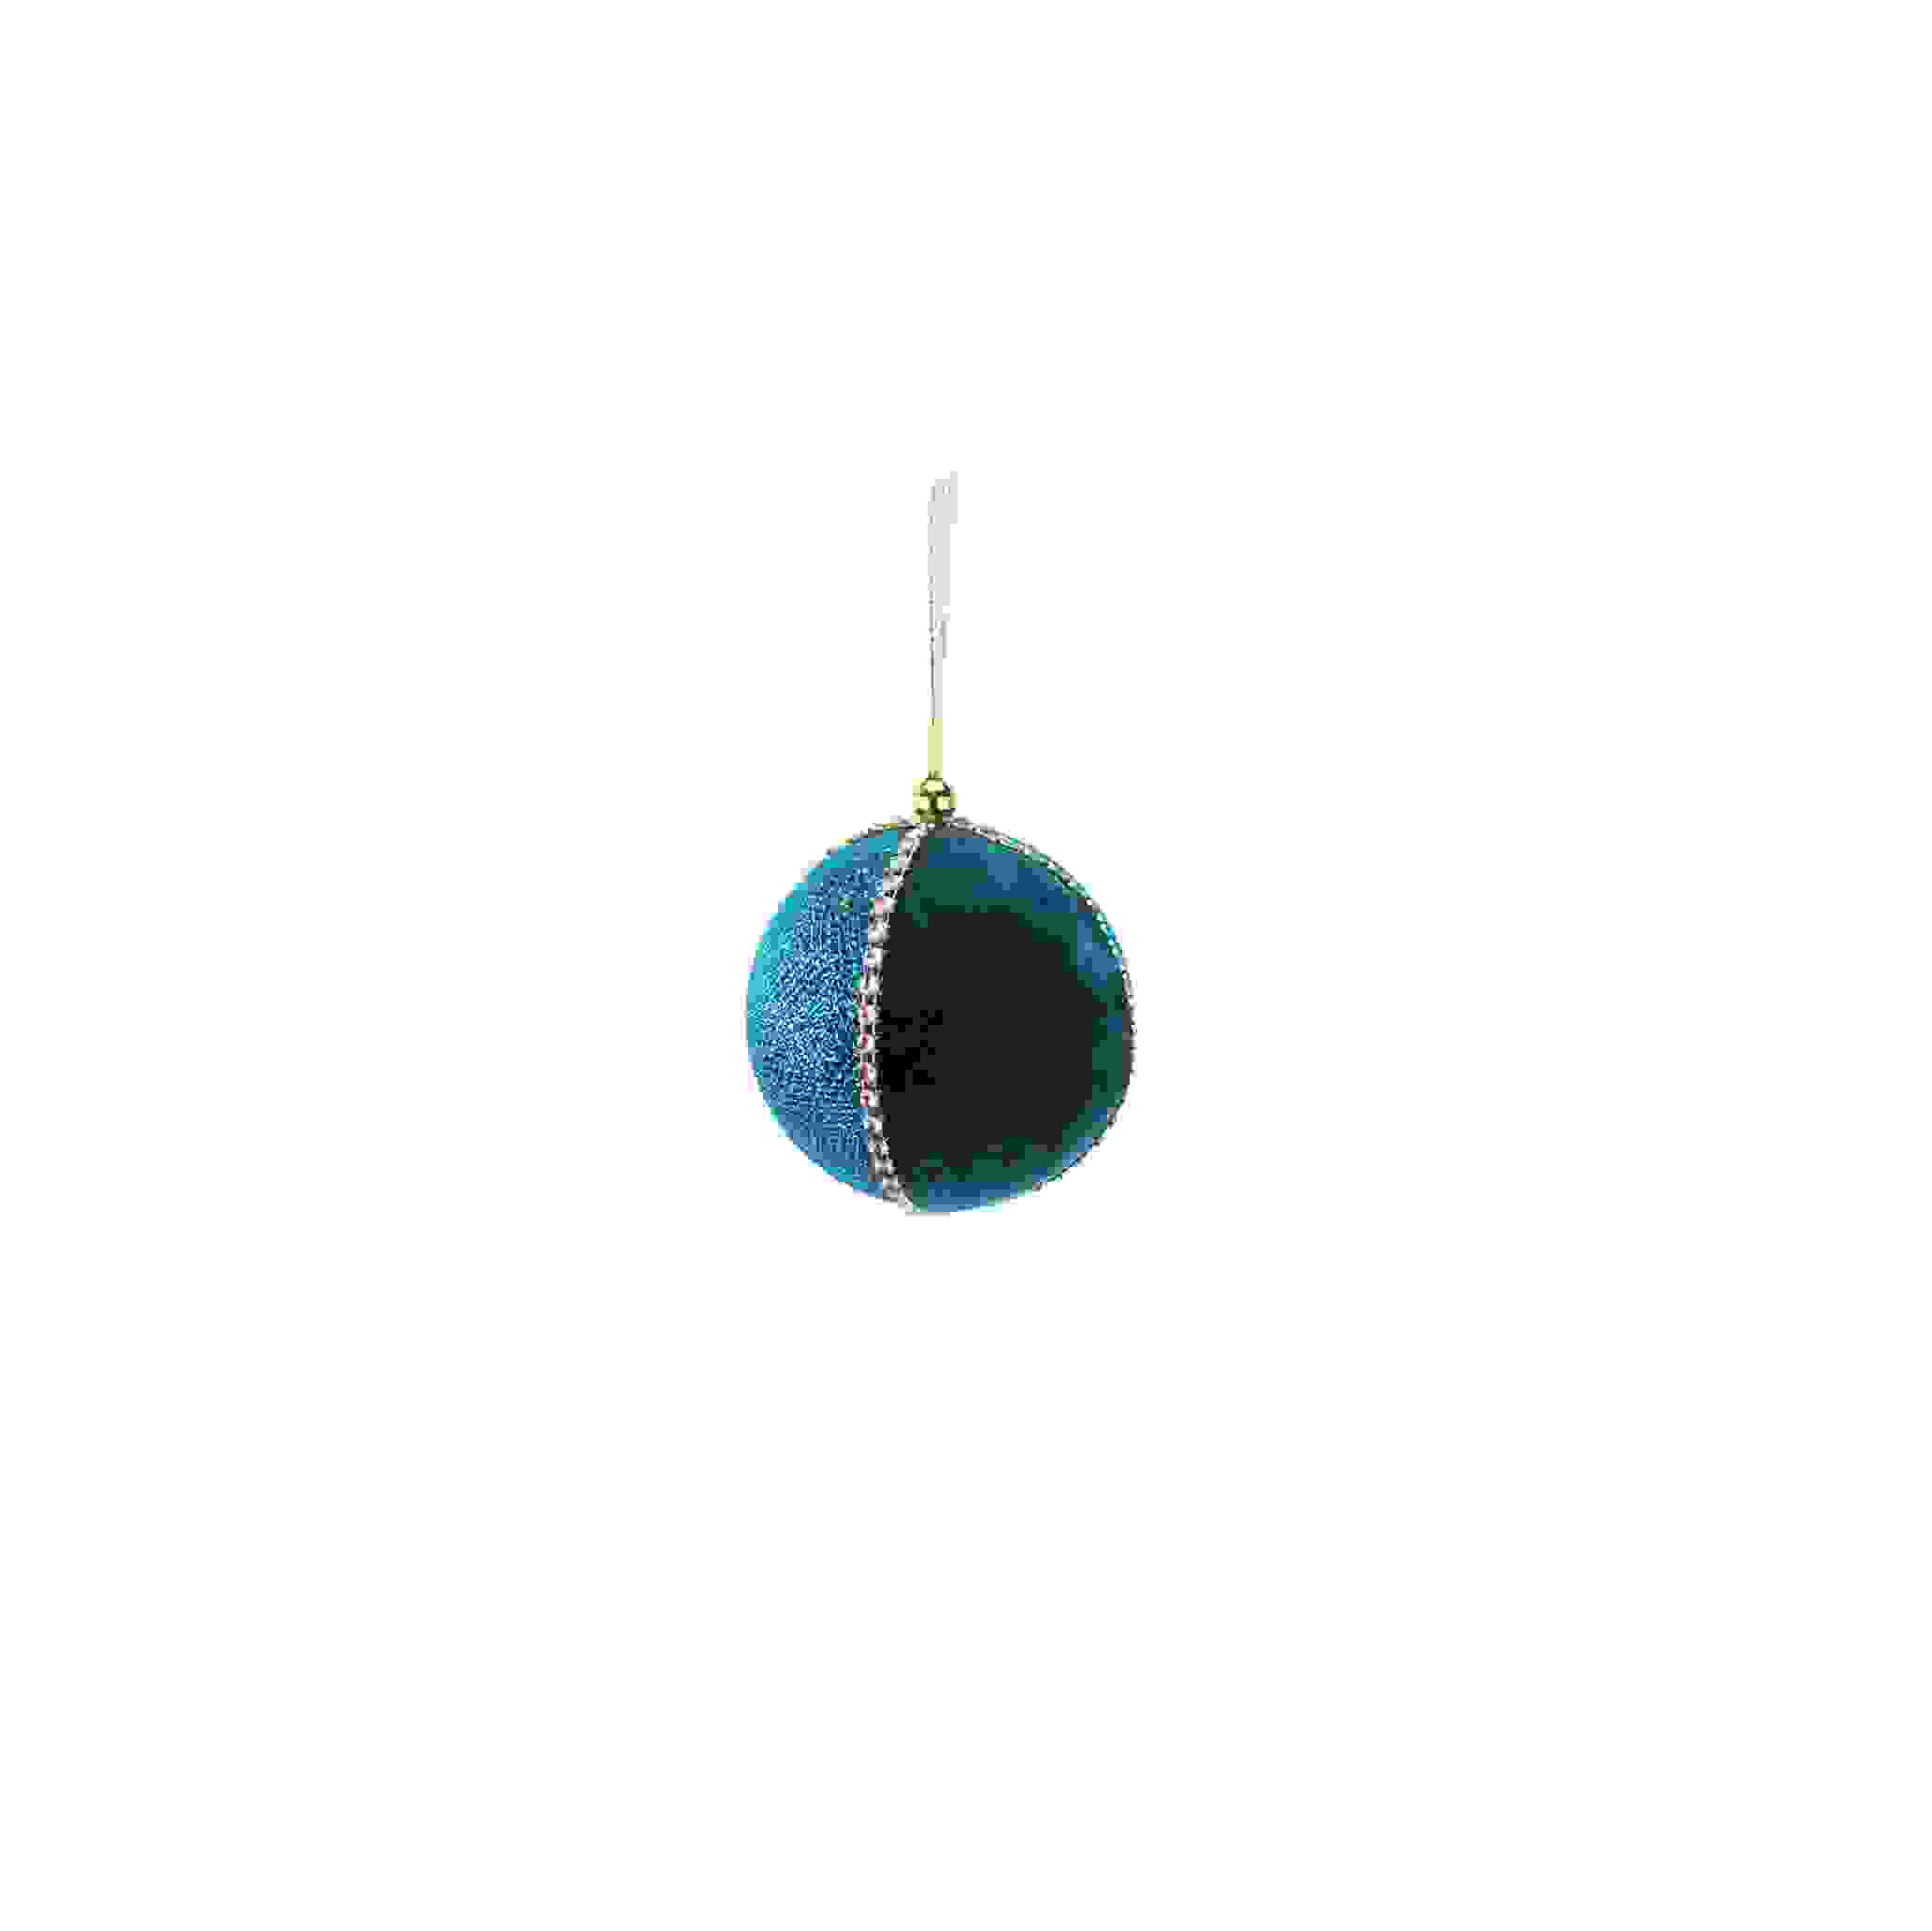 HANG. TEAL/GOLD GLITTERED LEAF BAUBLE